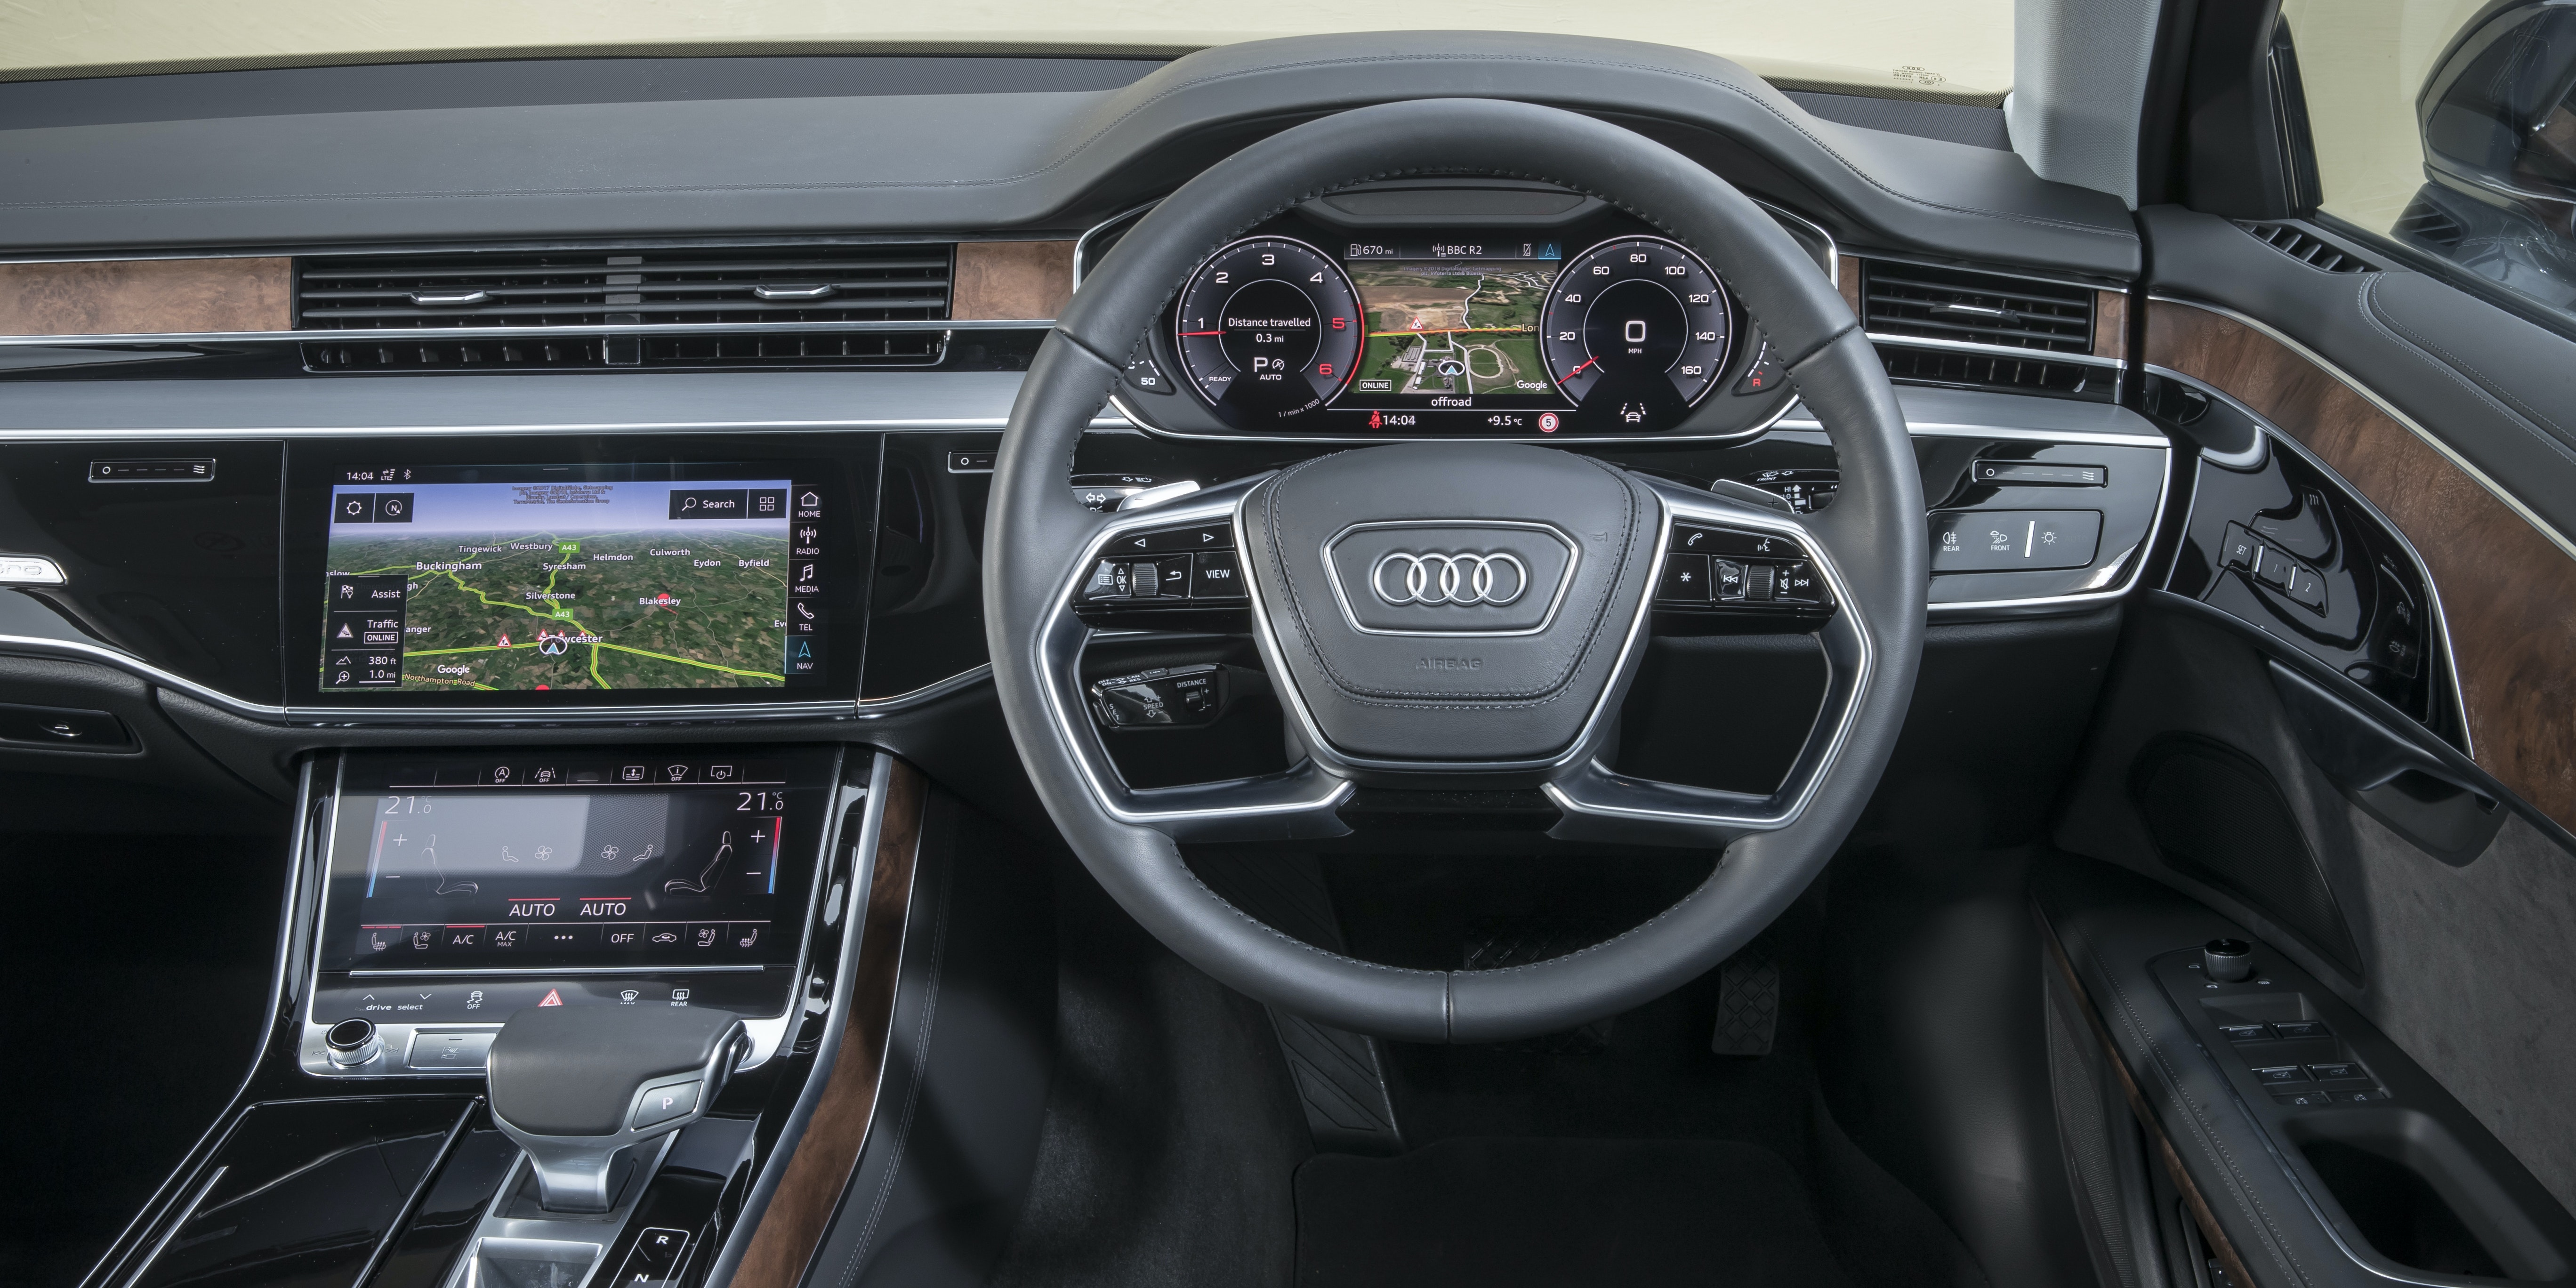 Getting comfortable behind the wheel of an Audi A8 is dead easy